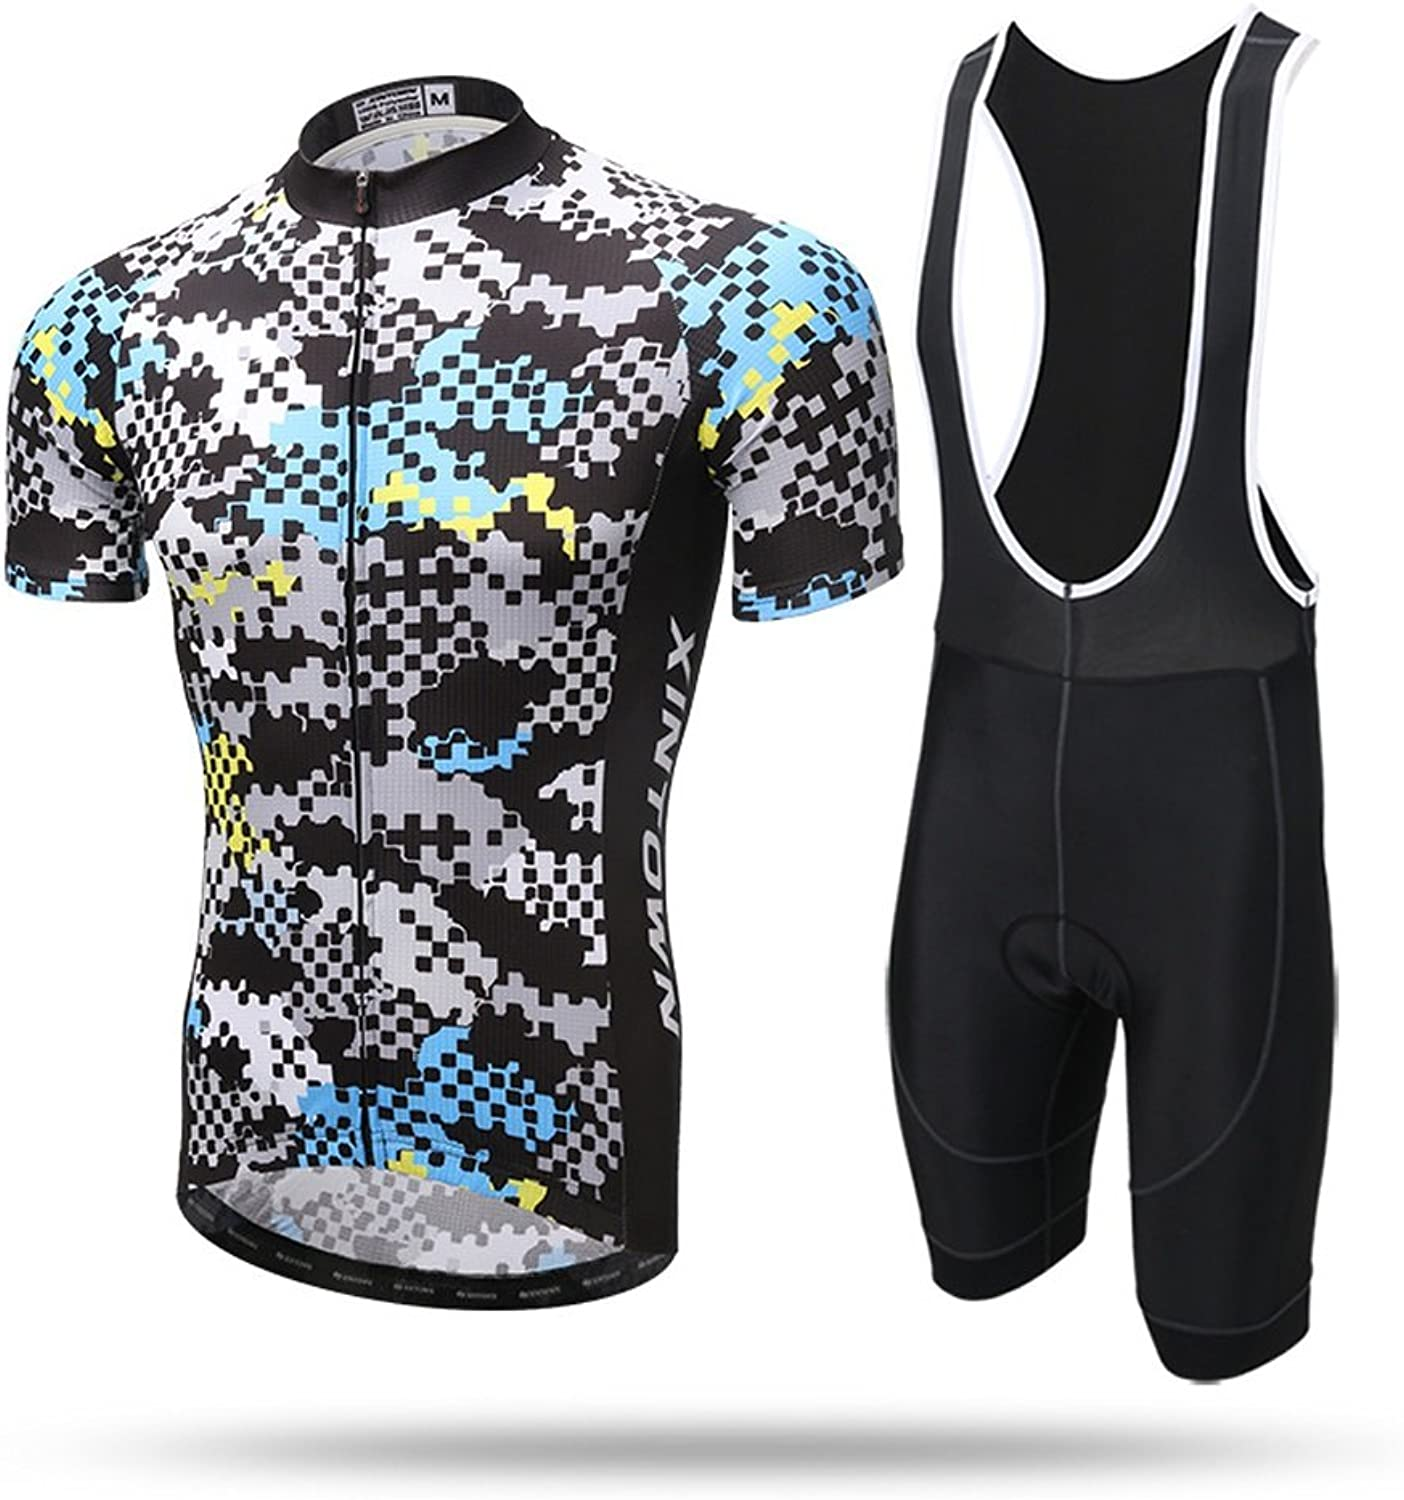 Pinjeer 100% Polyester Men's Cycling Clothing with color Grid Pattern 2018 Newest Summer Dresses,Breathable Multicolor Jersey Men Shorts Sets with Suspender Pants for Racing Bike,Quick Dry Outdoors S